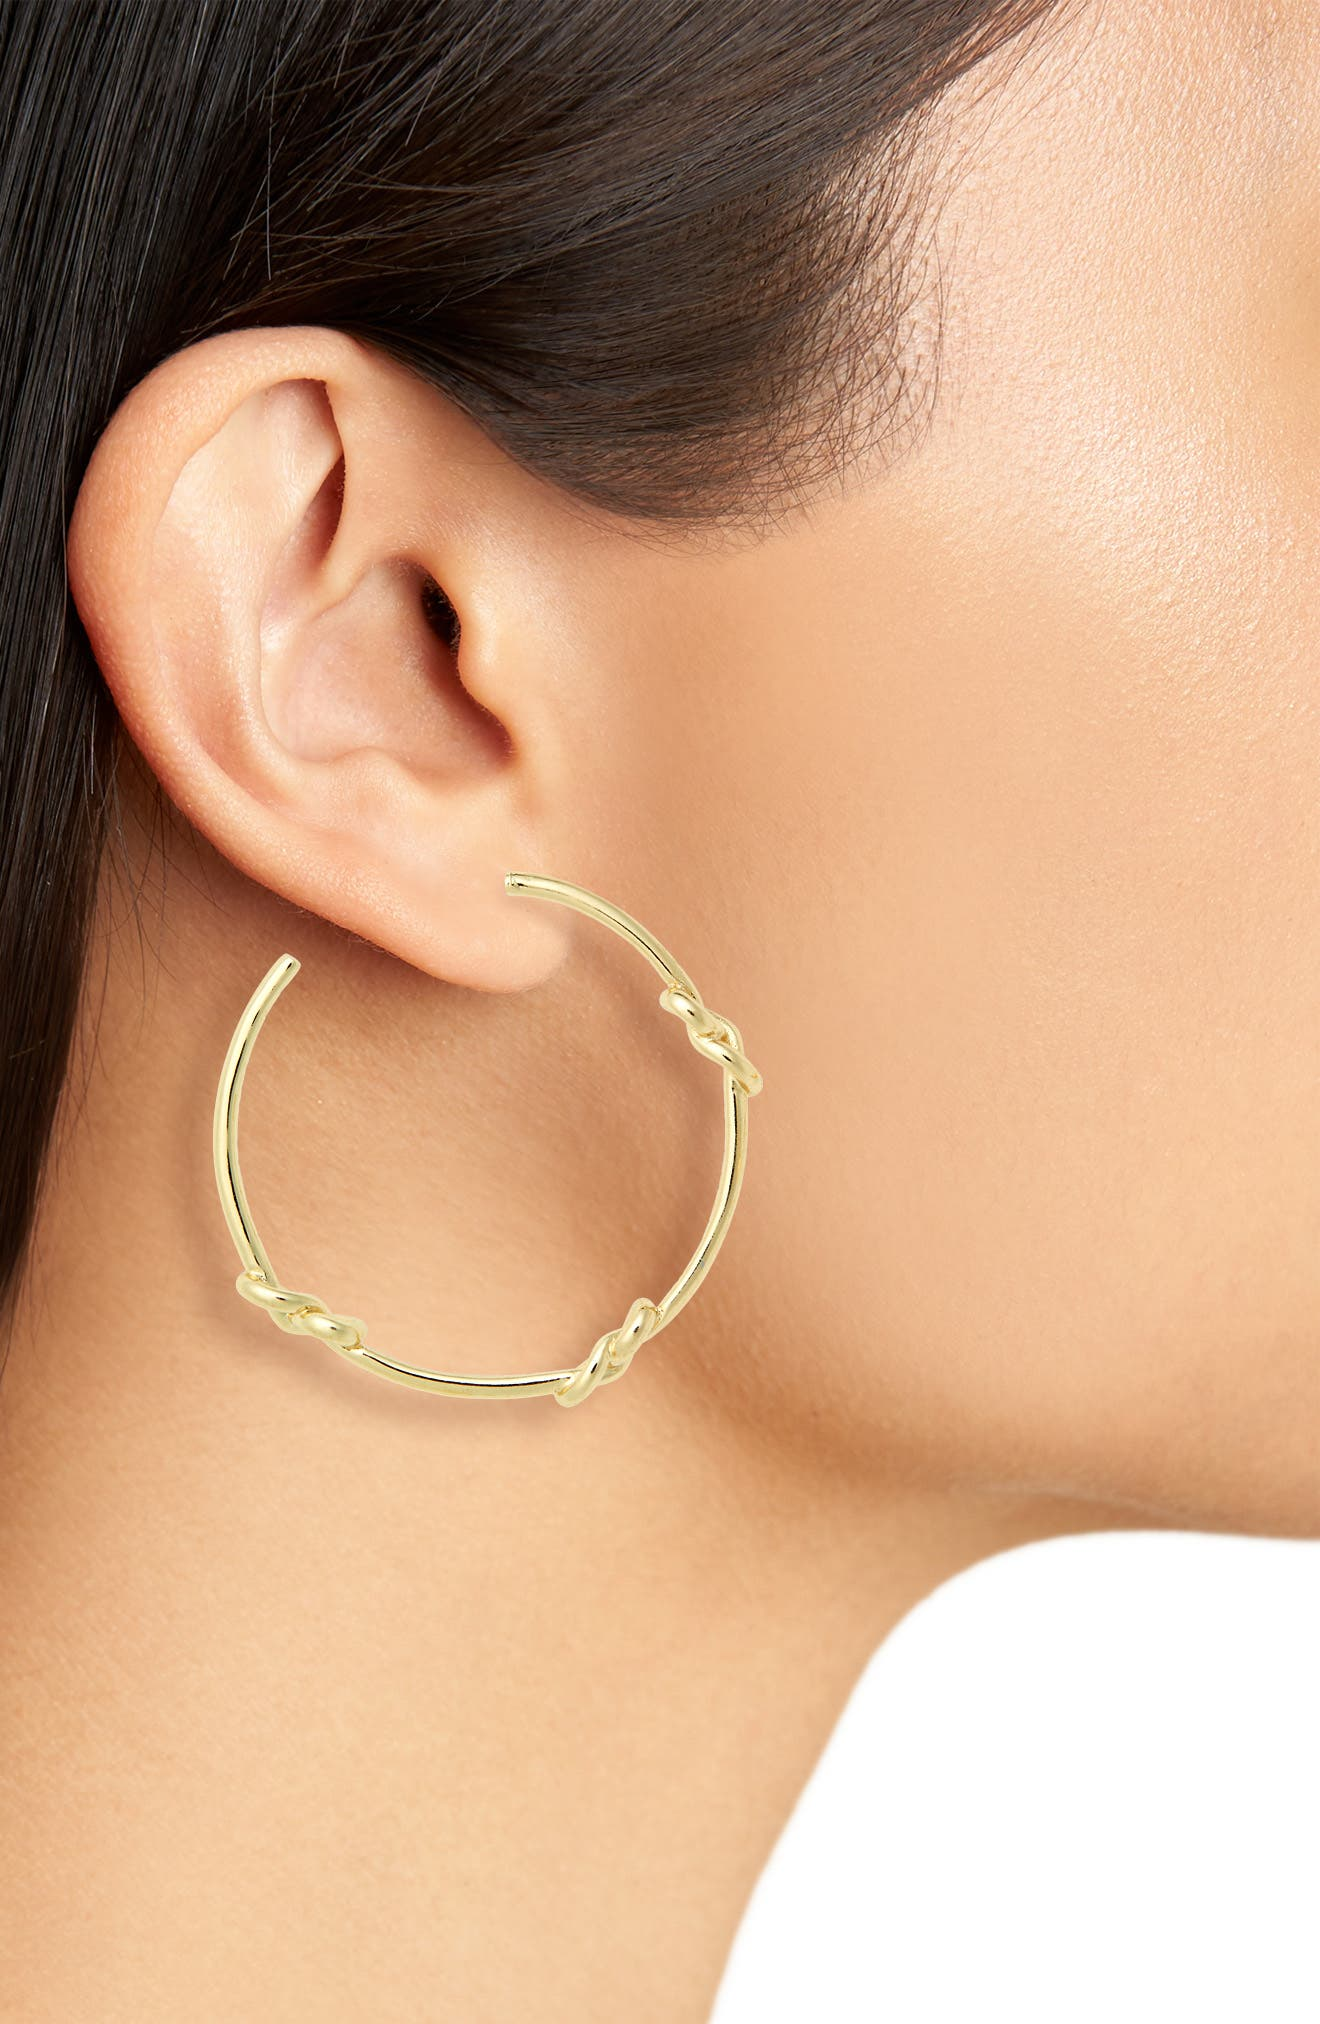 Metal Love Knot Hoop Earrings,                             Alternate thumbnail 2, color,                             710